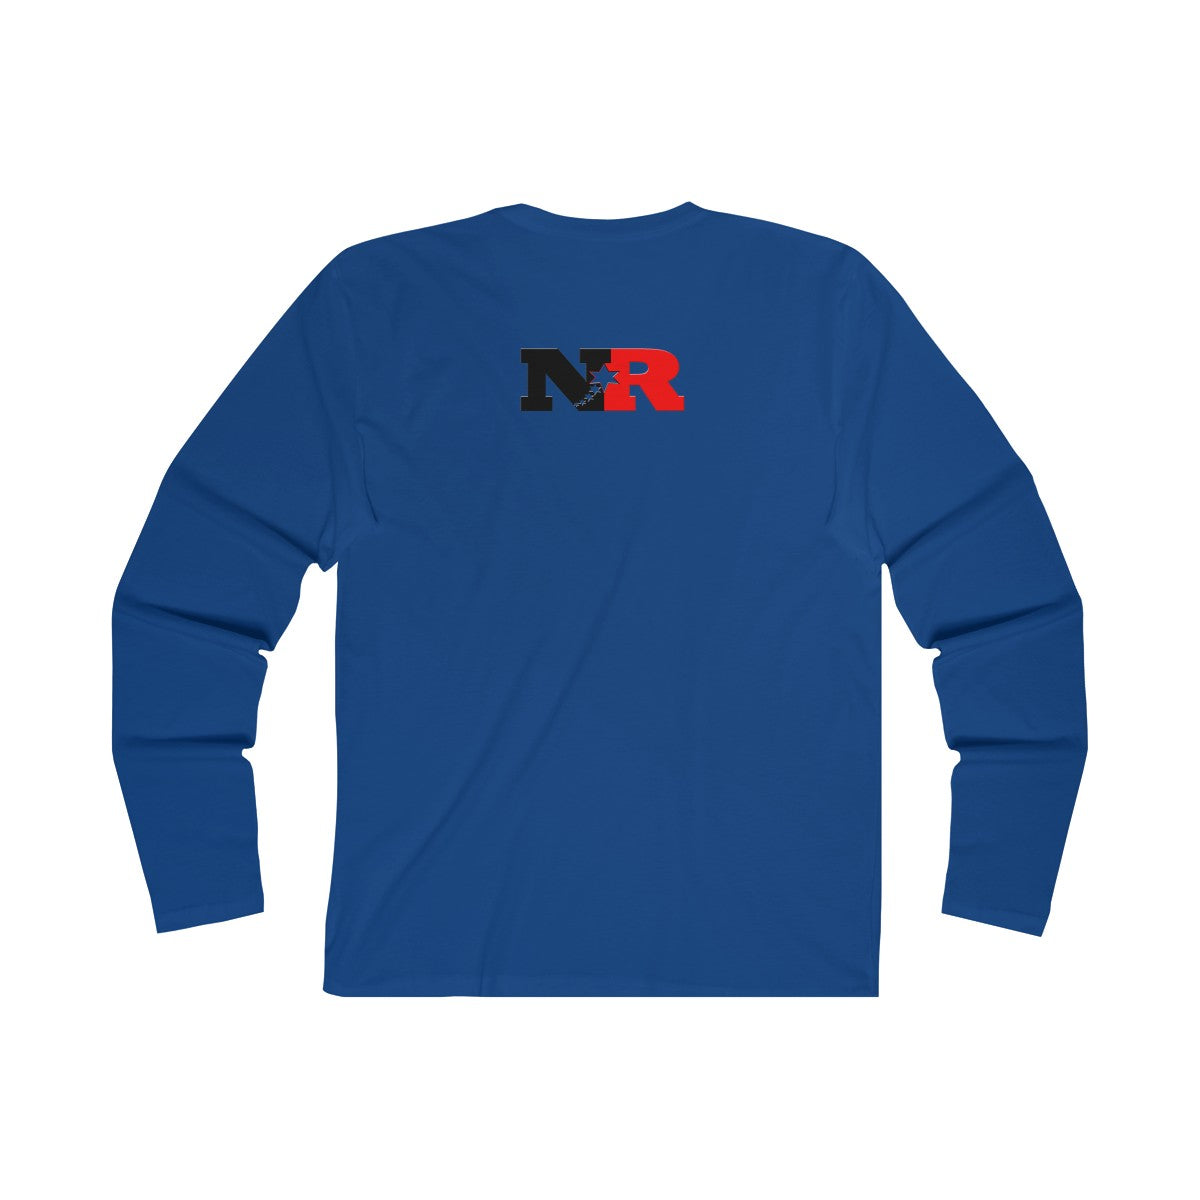 Men's Long Sleeve Crew Tee - Serendipity